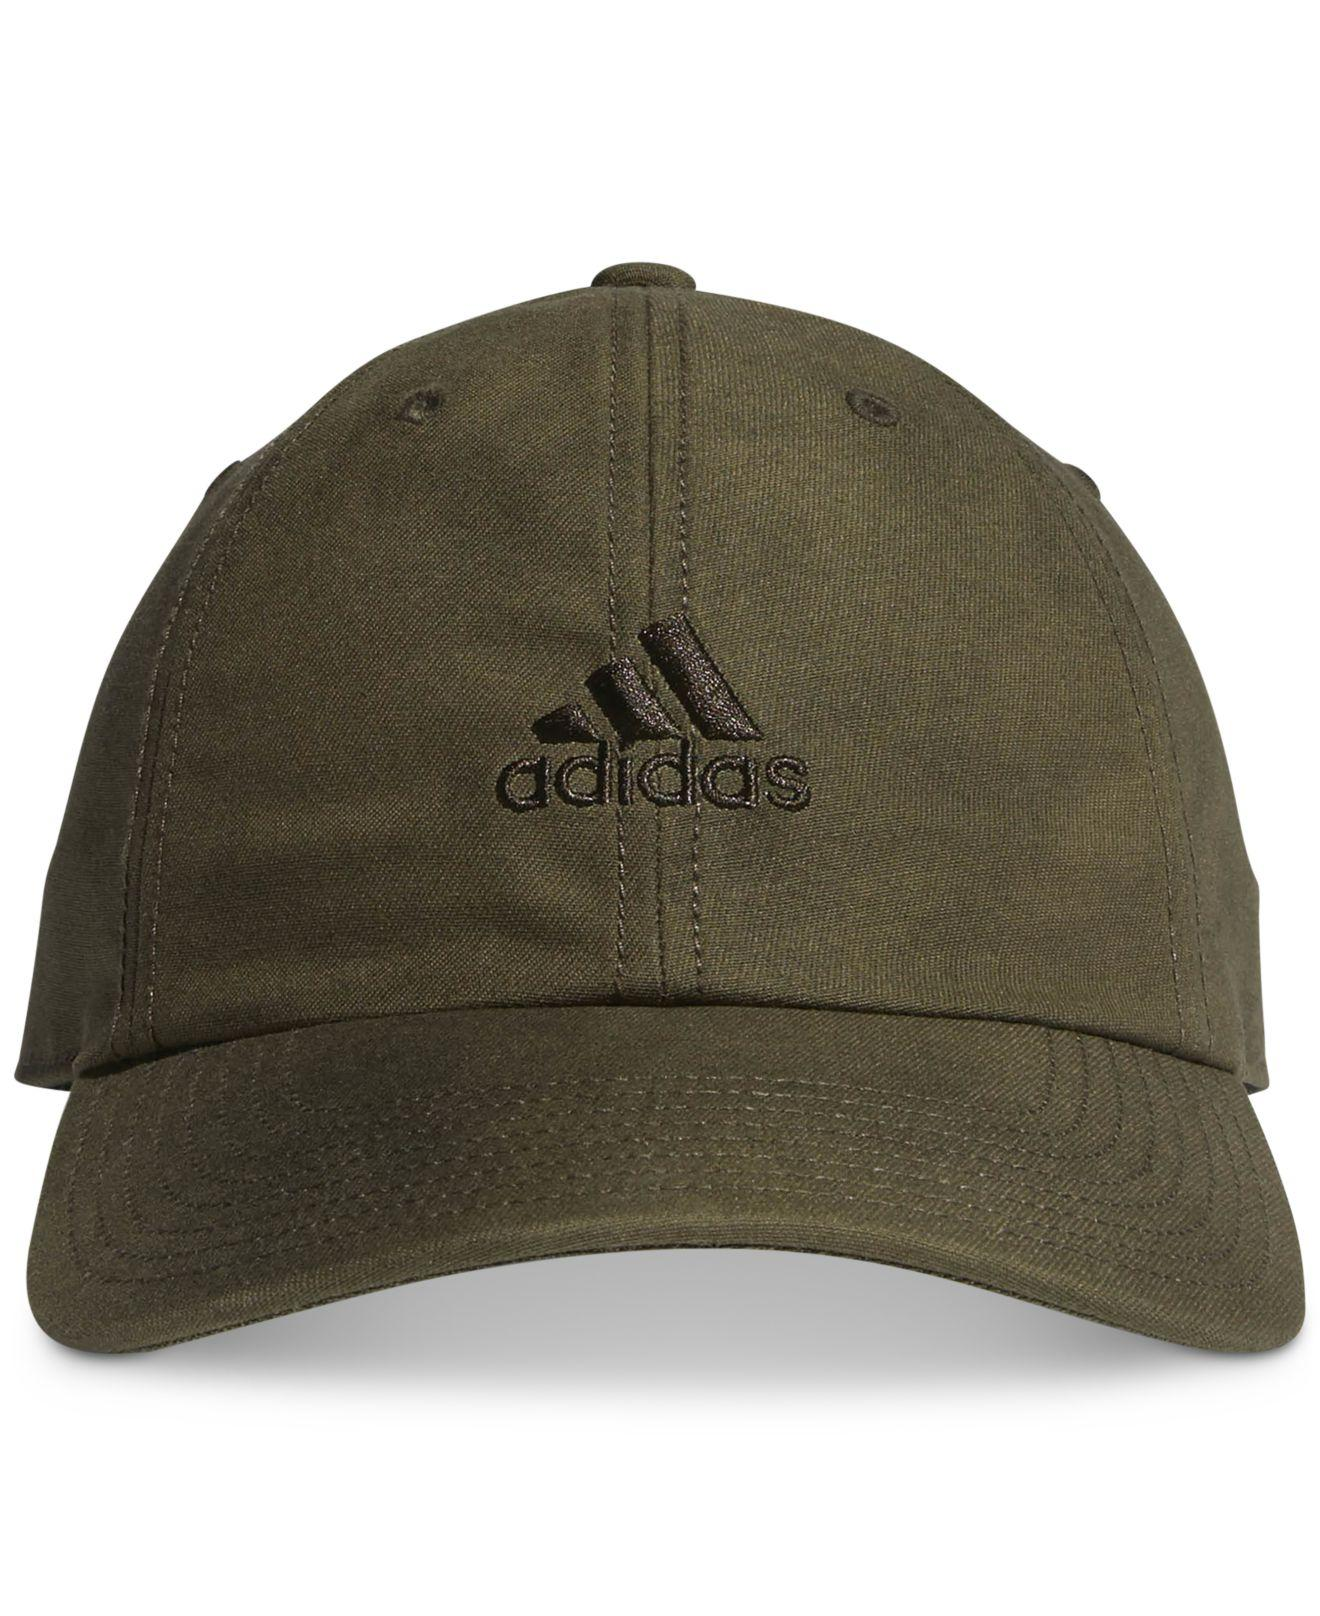 bd5330723a6 Lyst - adidas Originals Estate Cap in Green for Men